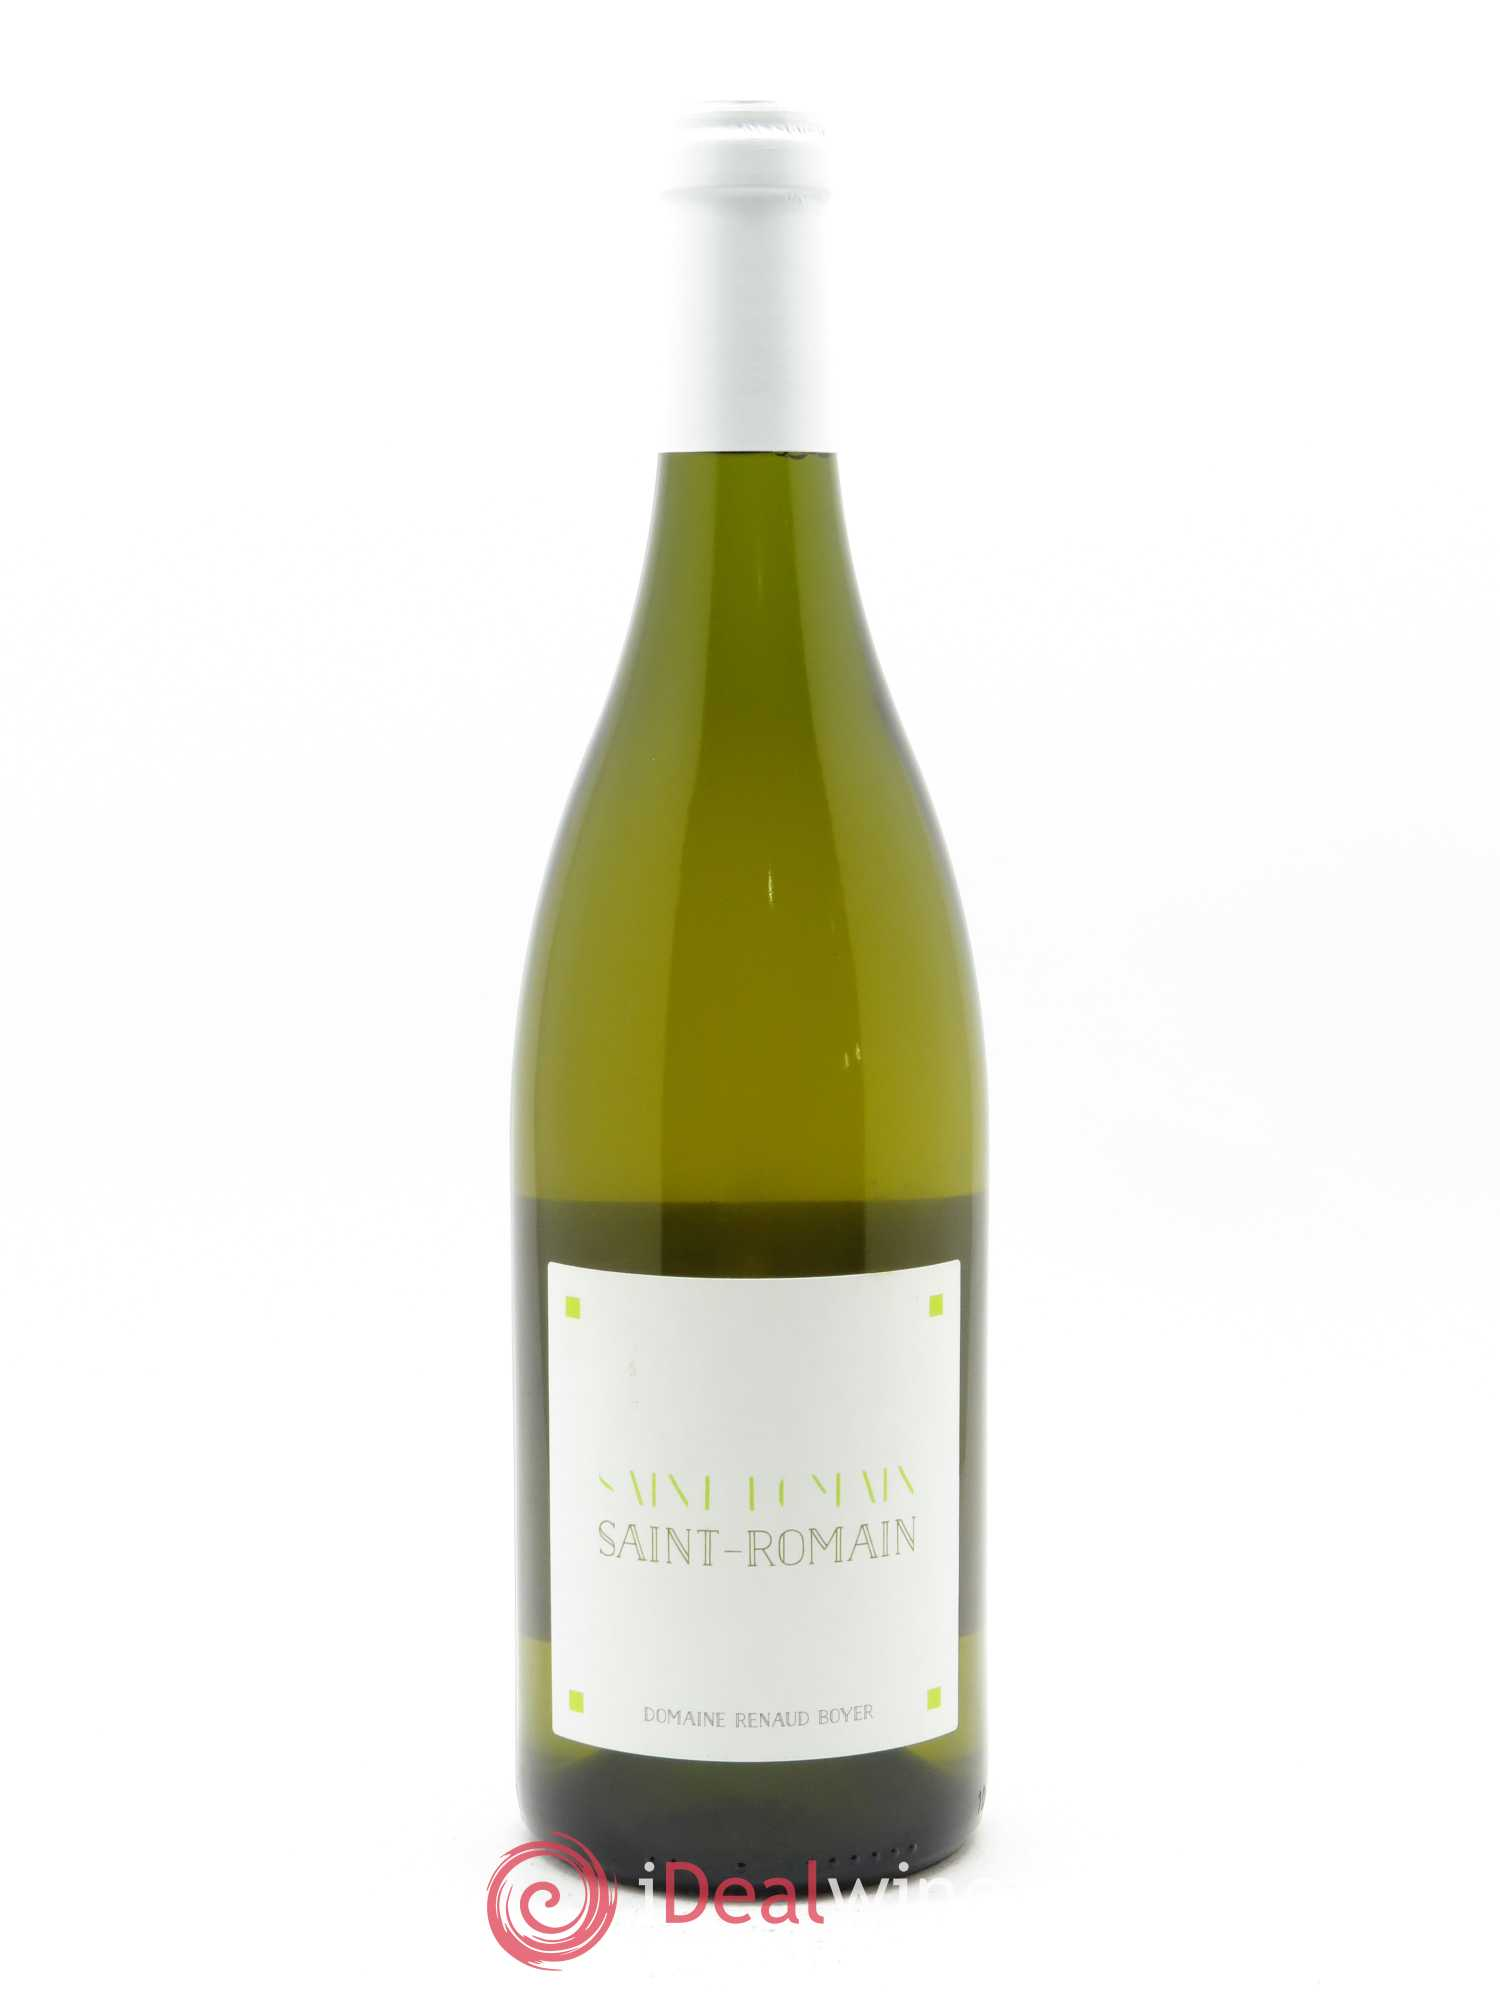 Saint-Romain Renaud Boyer  2018 - Lot de 1 Bouteille